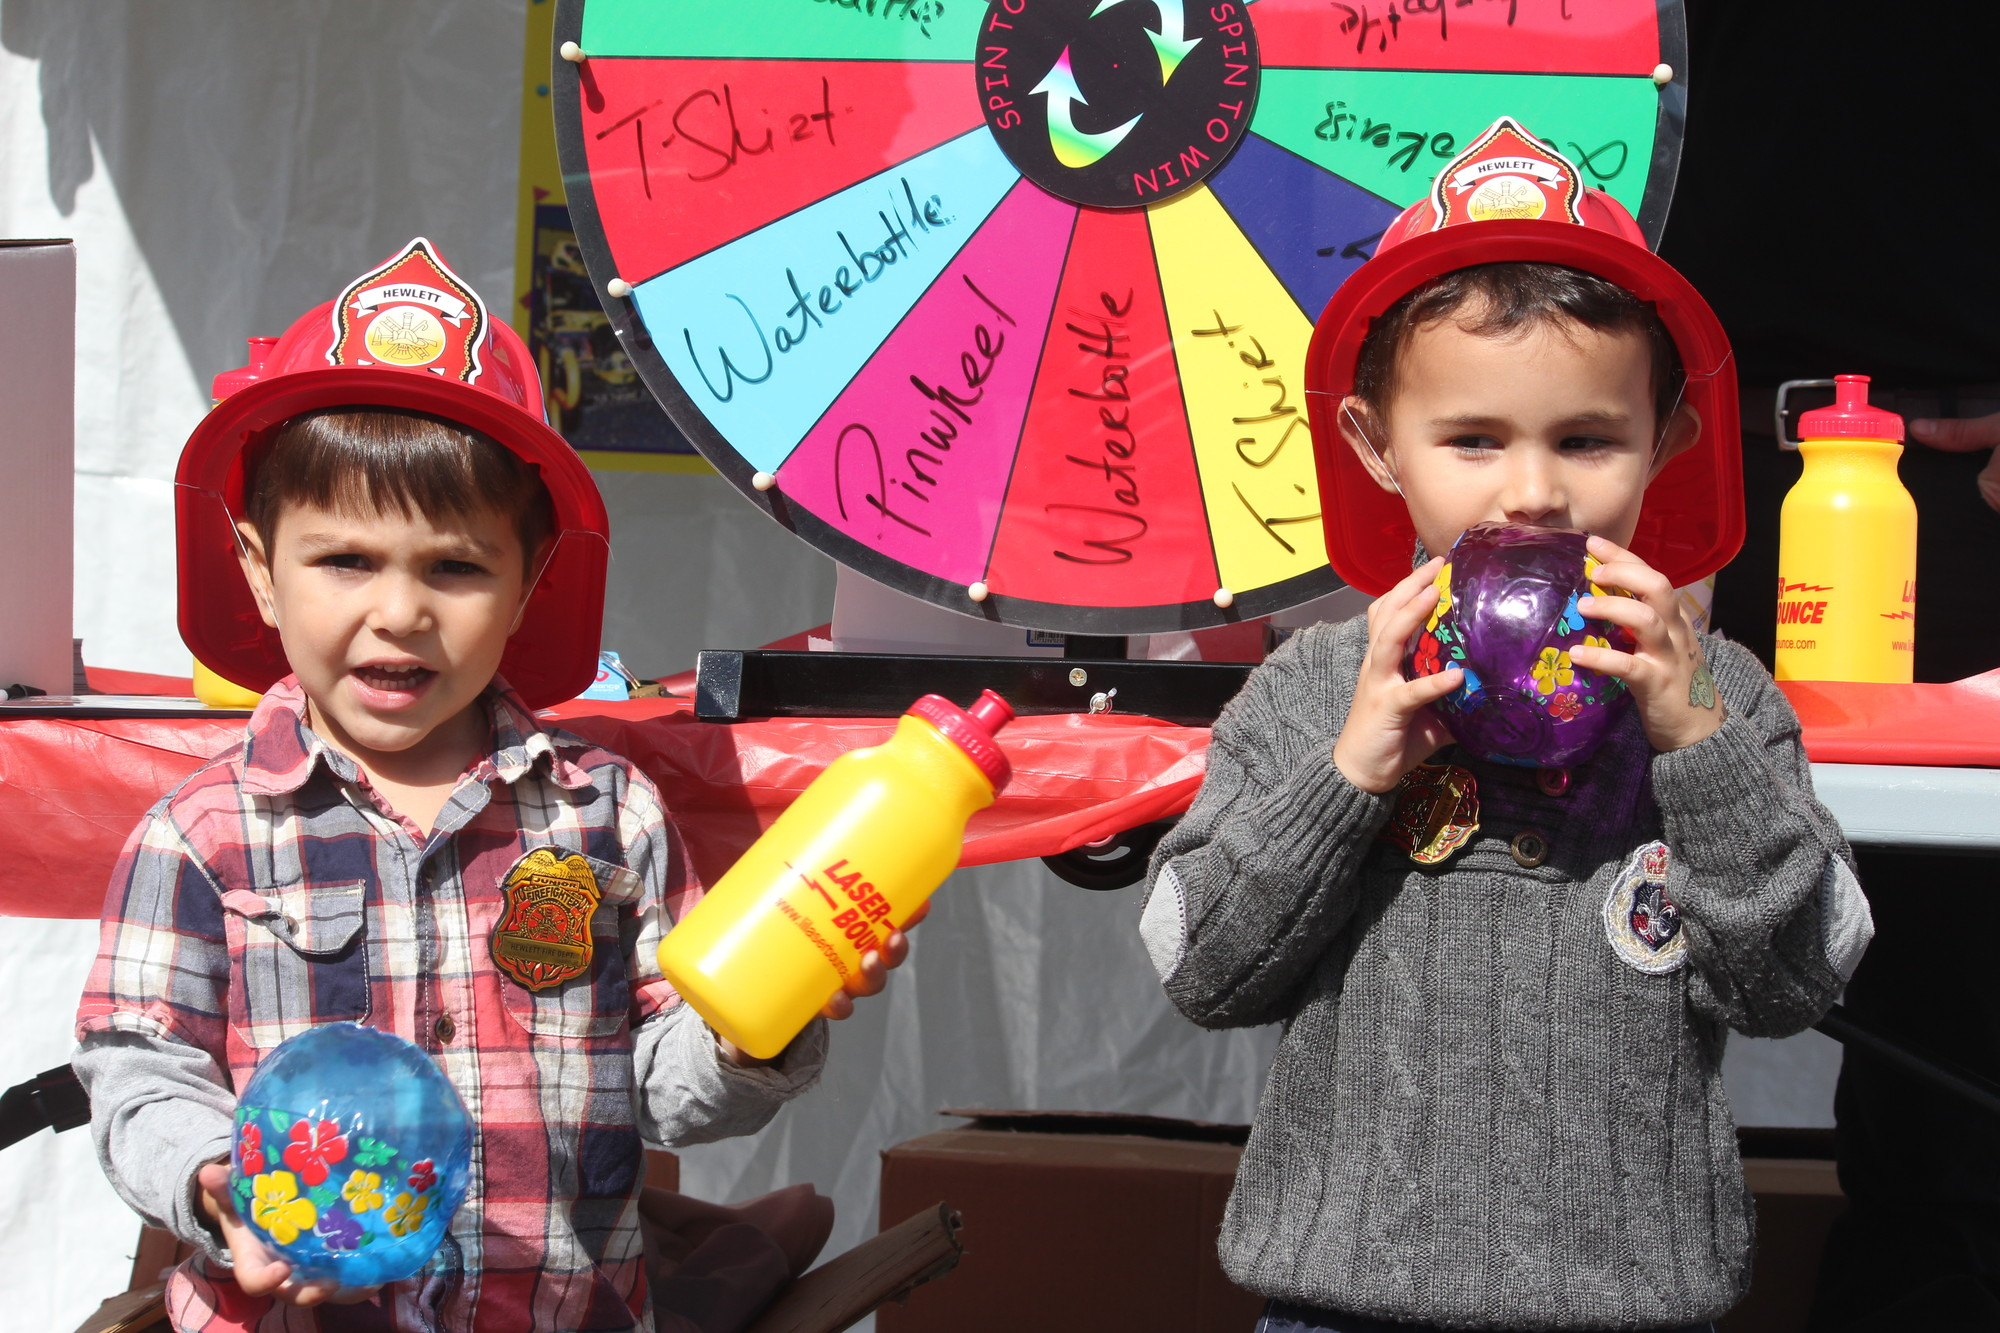 Hewlett Fire Department could have two new members in the future as Aleksander Koroveshi, left,  and Ben Lamdan, both 3, showed off their festival swag.